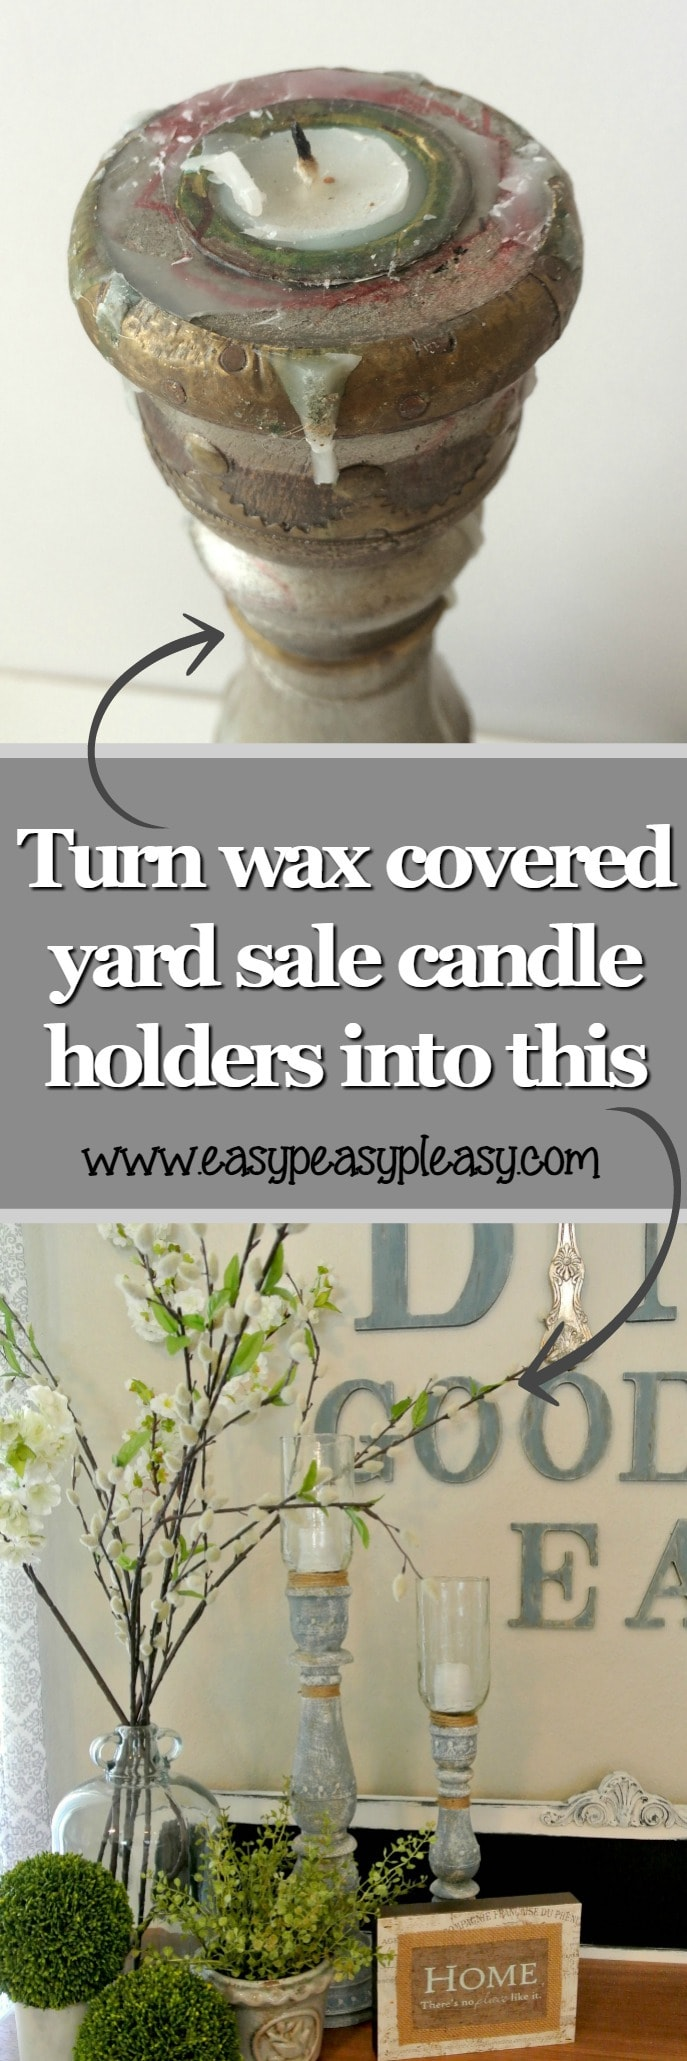 How to easily remove wax from candle holders and transform yard sale candle holders into a thing of beauty!